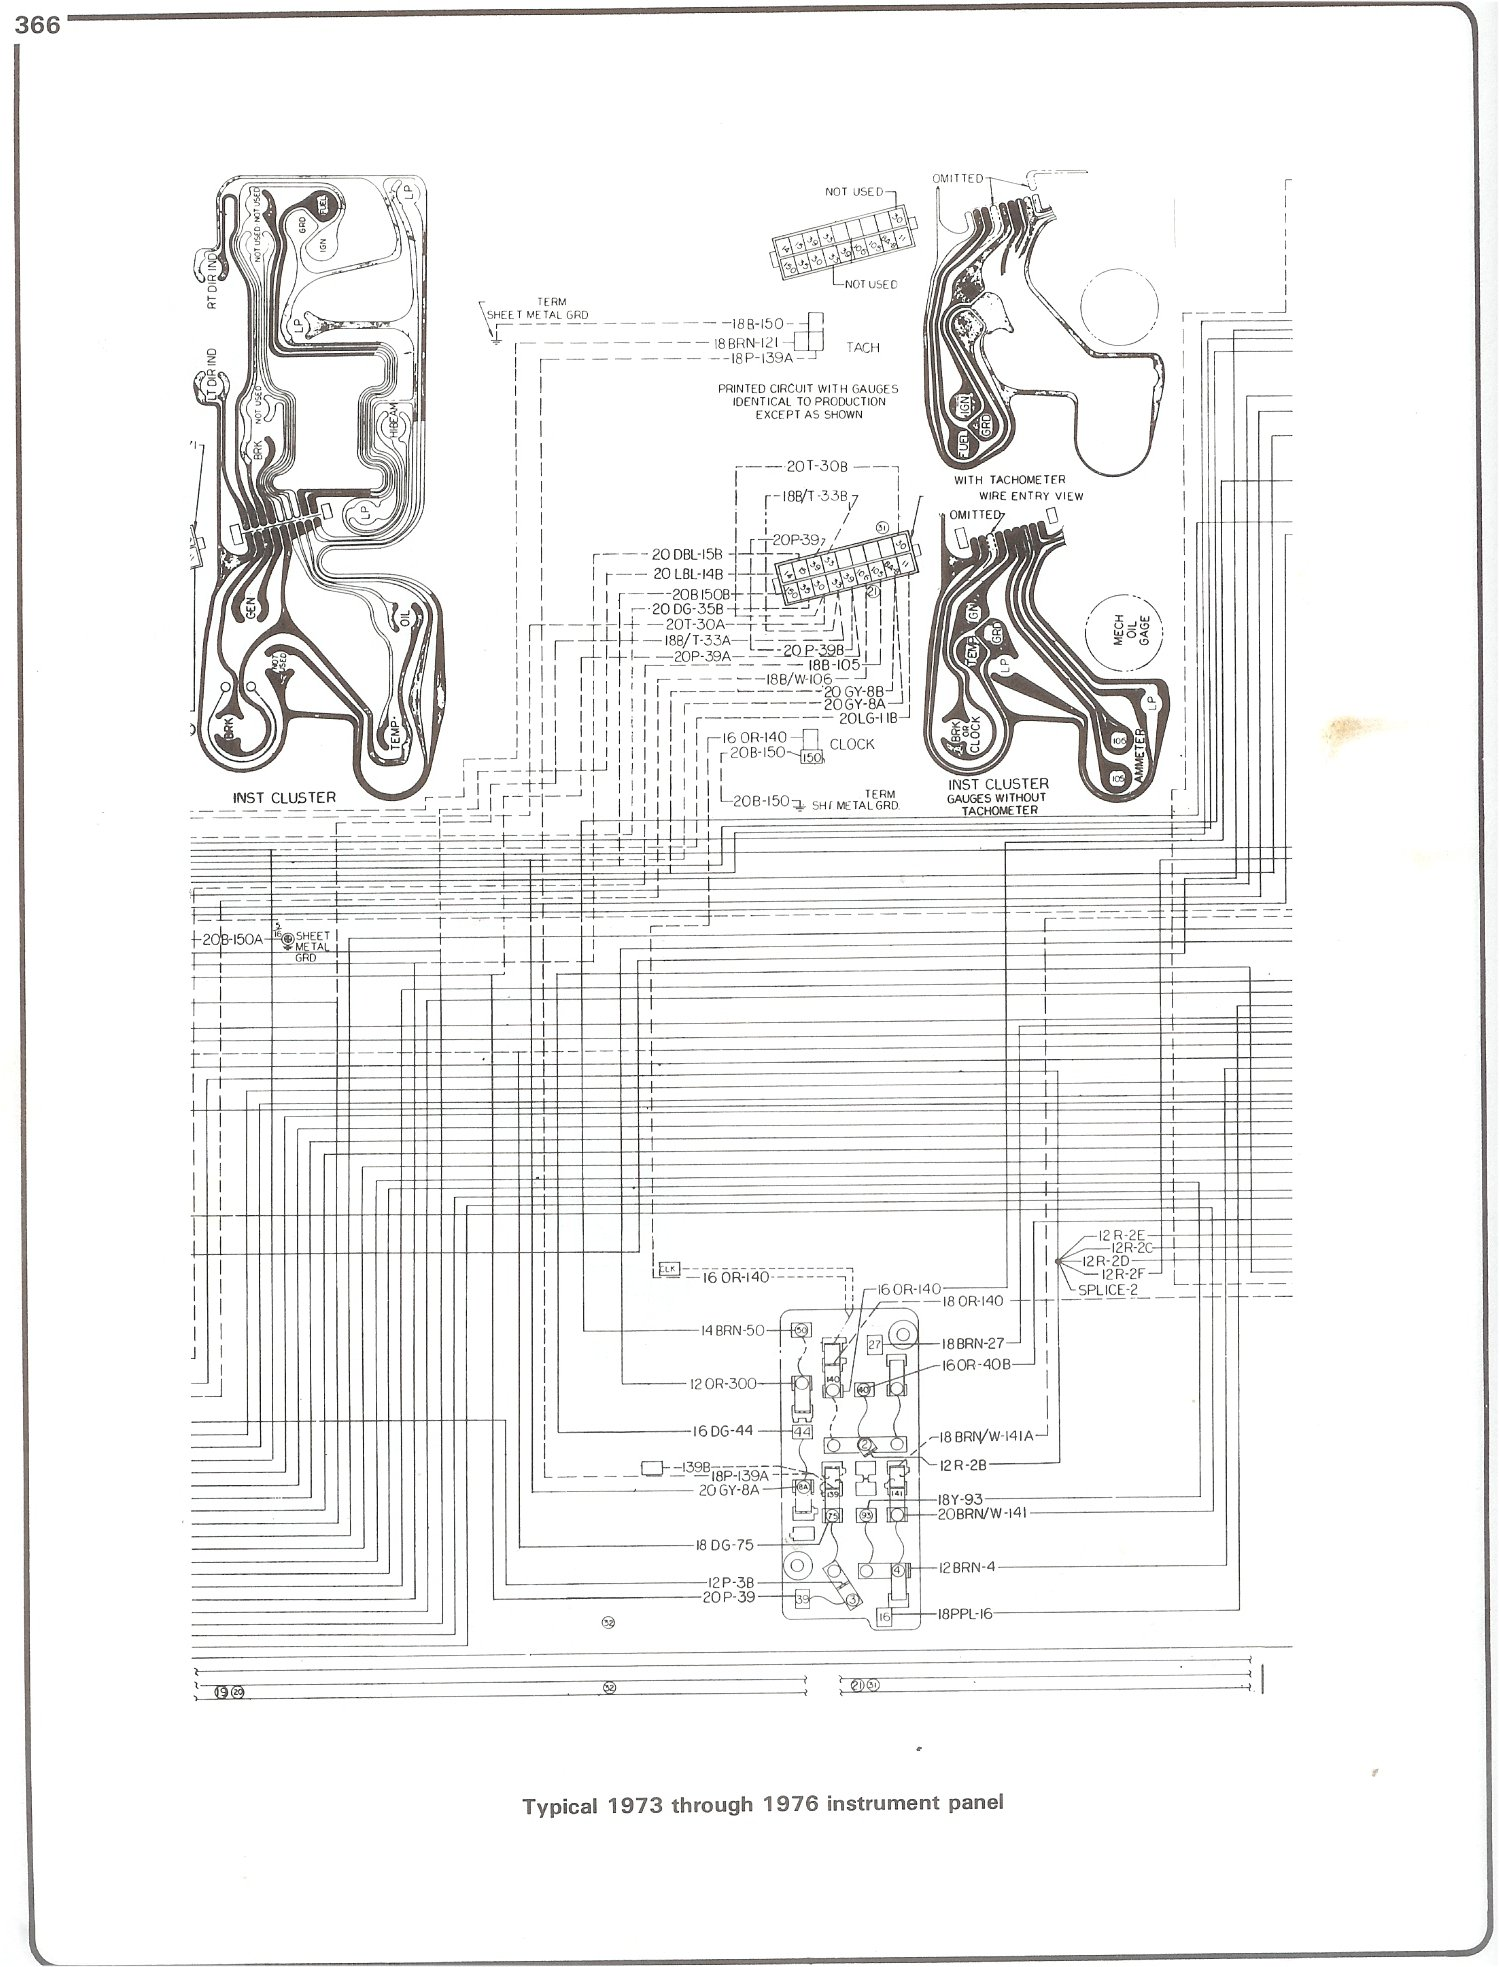 Complete 73 87 Wiring Diagrams 1937 Chevy Truck Wiring Diagram 1983 Chevy  Truck Wiring Diagram